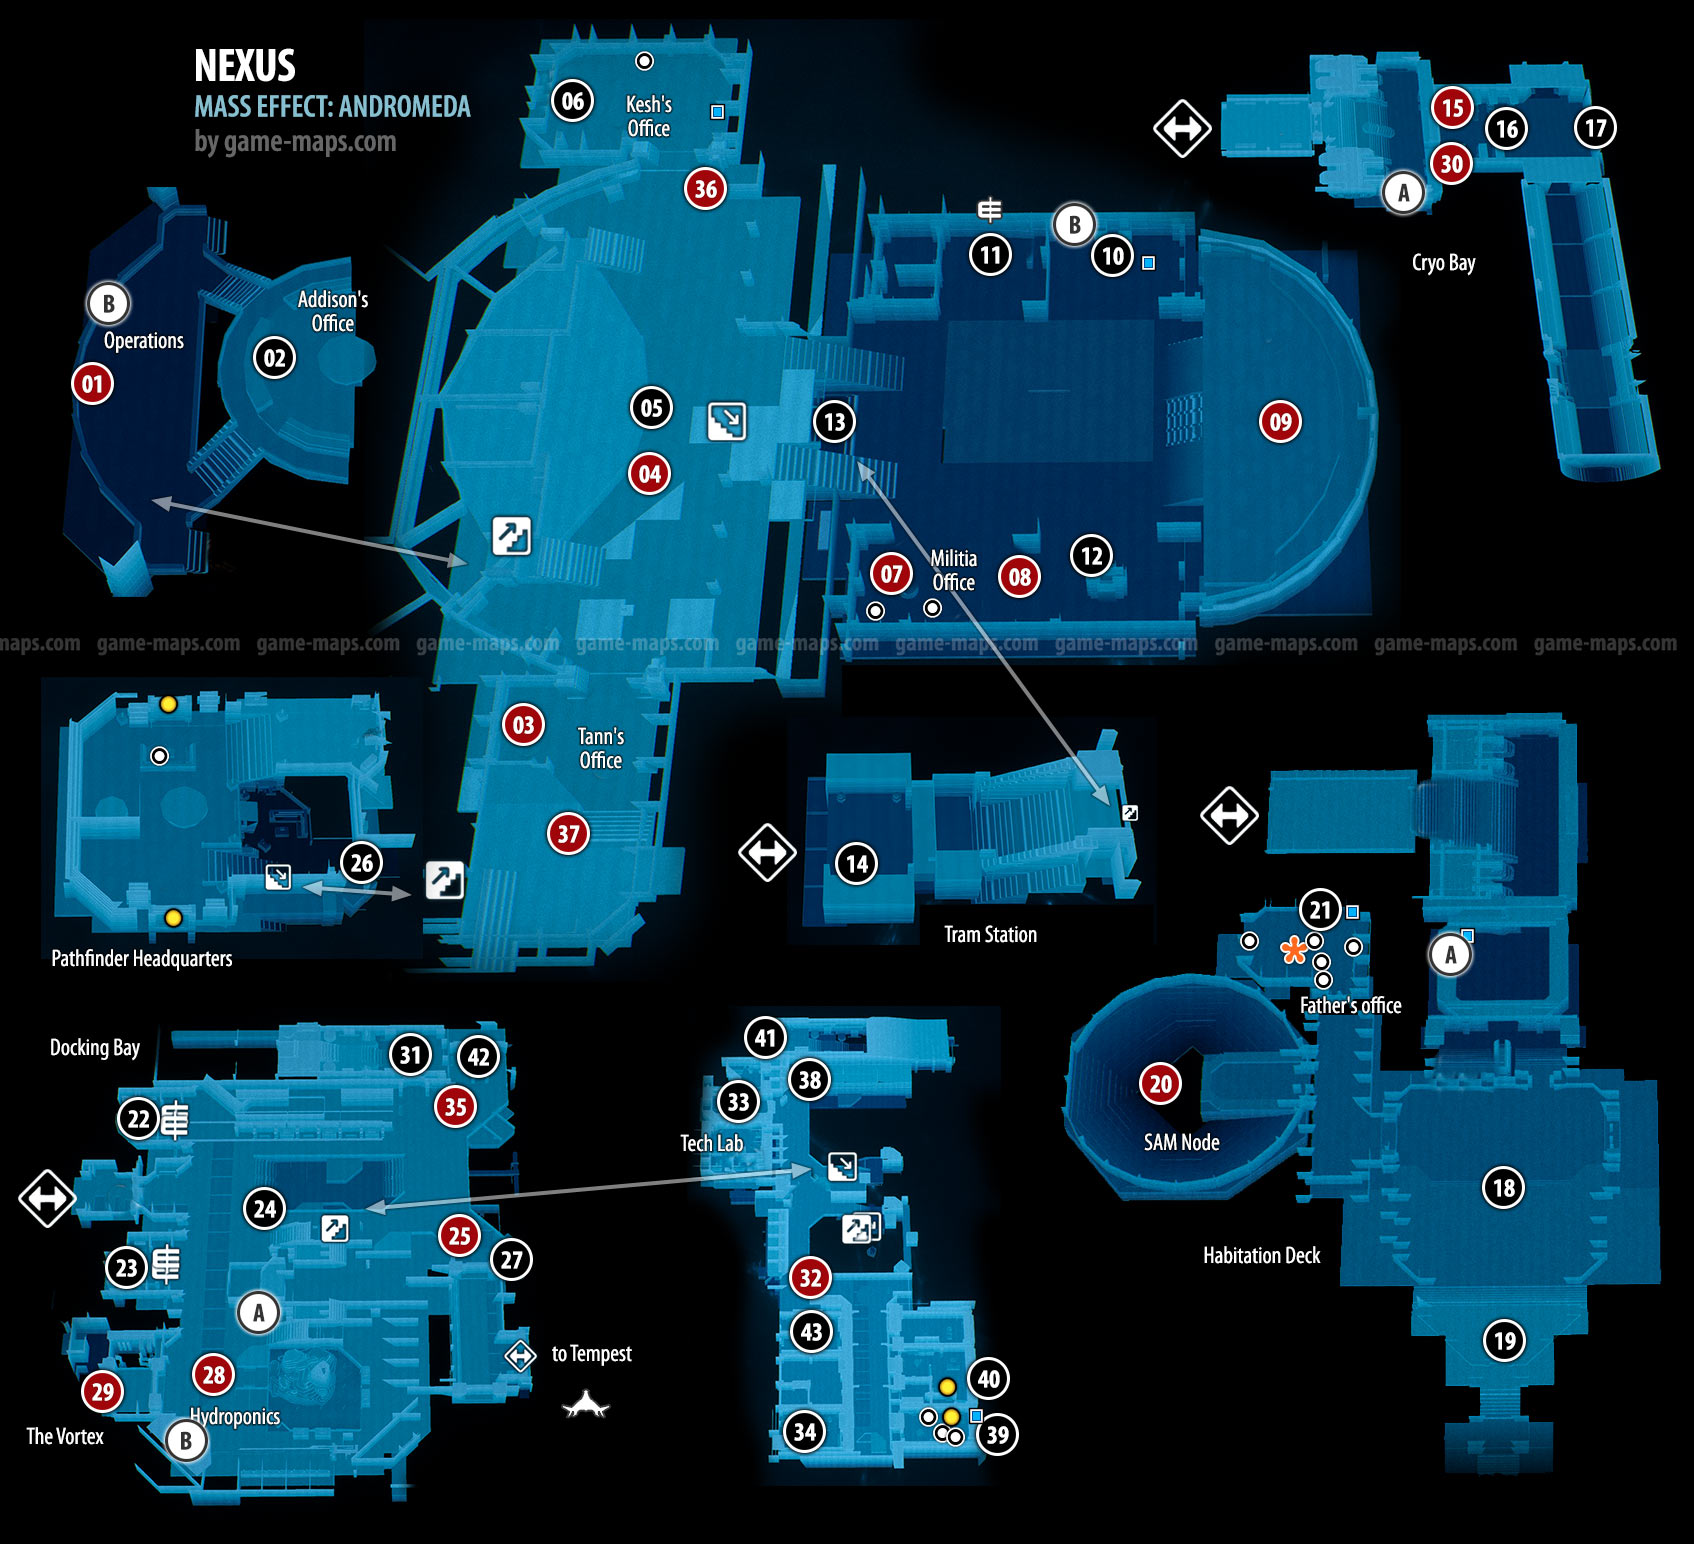 Mass Effect Andromeda Star Map.Nexus Mass Effect Andromeda Game Maps Com